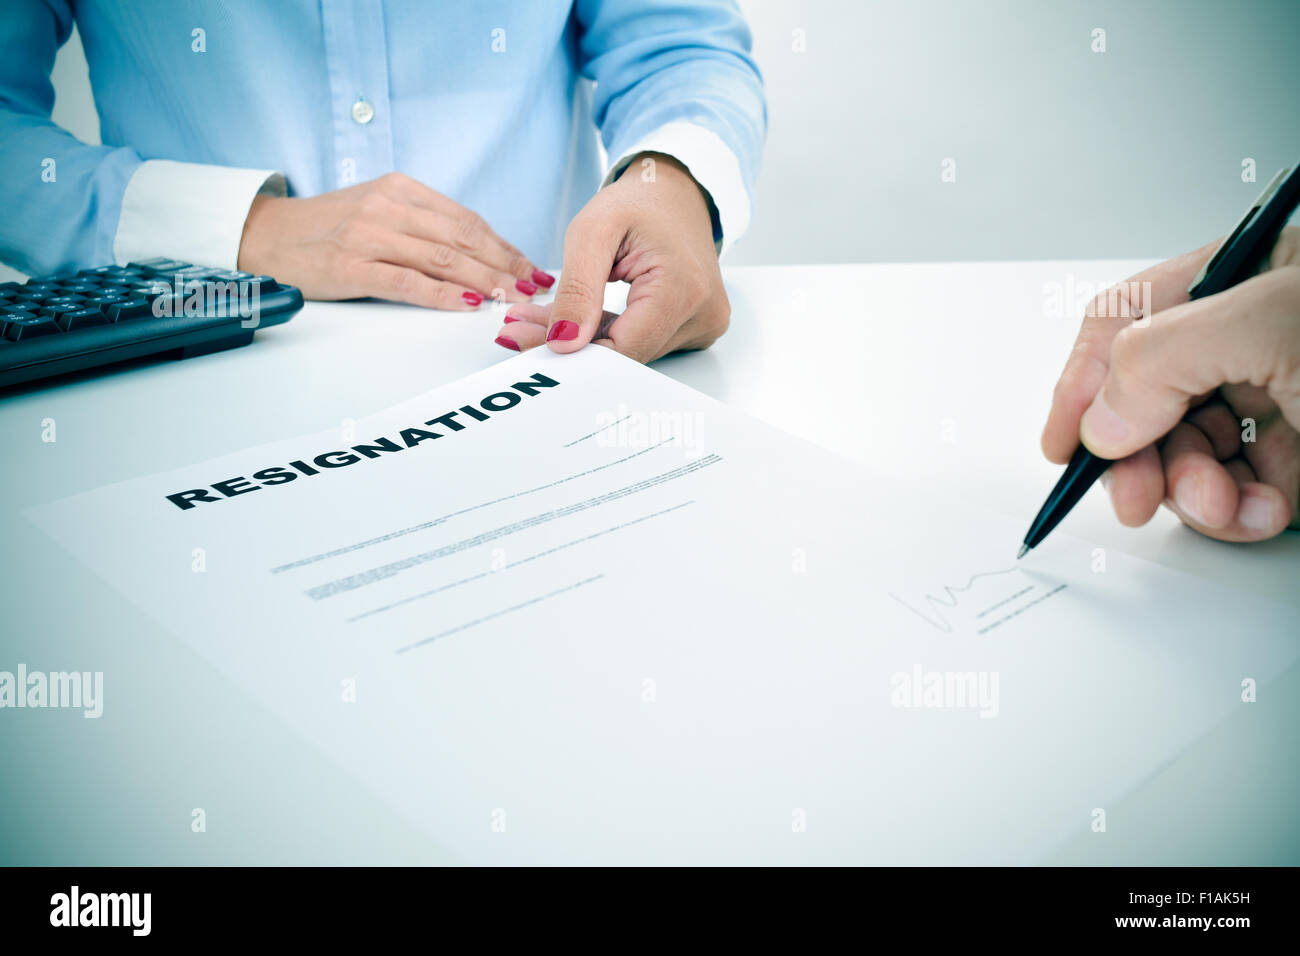 closeup of the hand of a man who is signing a resignation document on a desk in front of a young woman - Stock Image